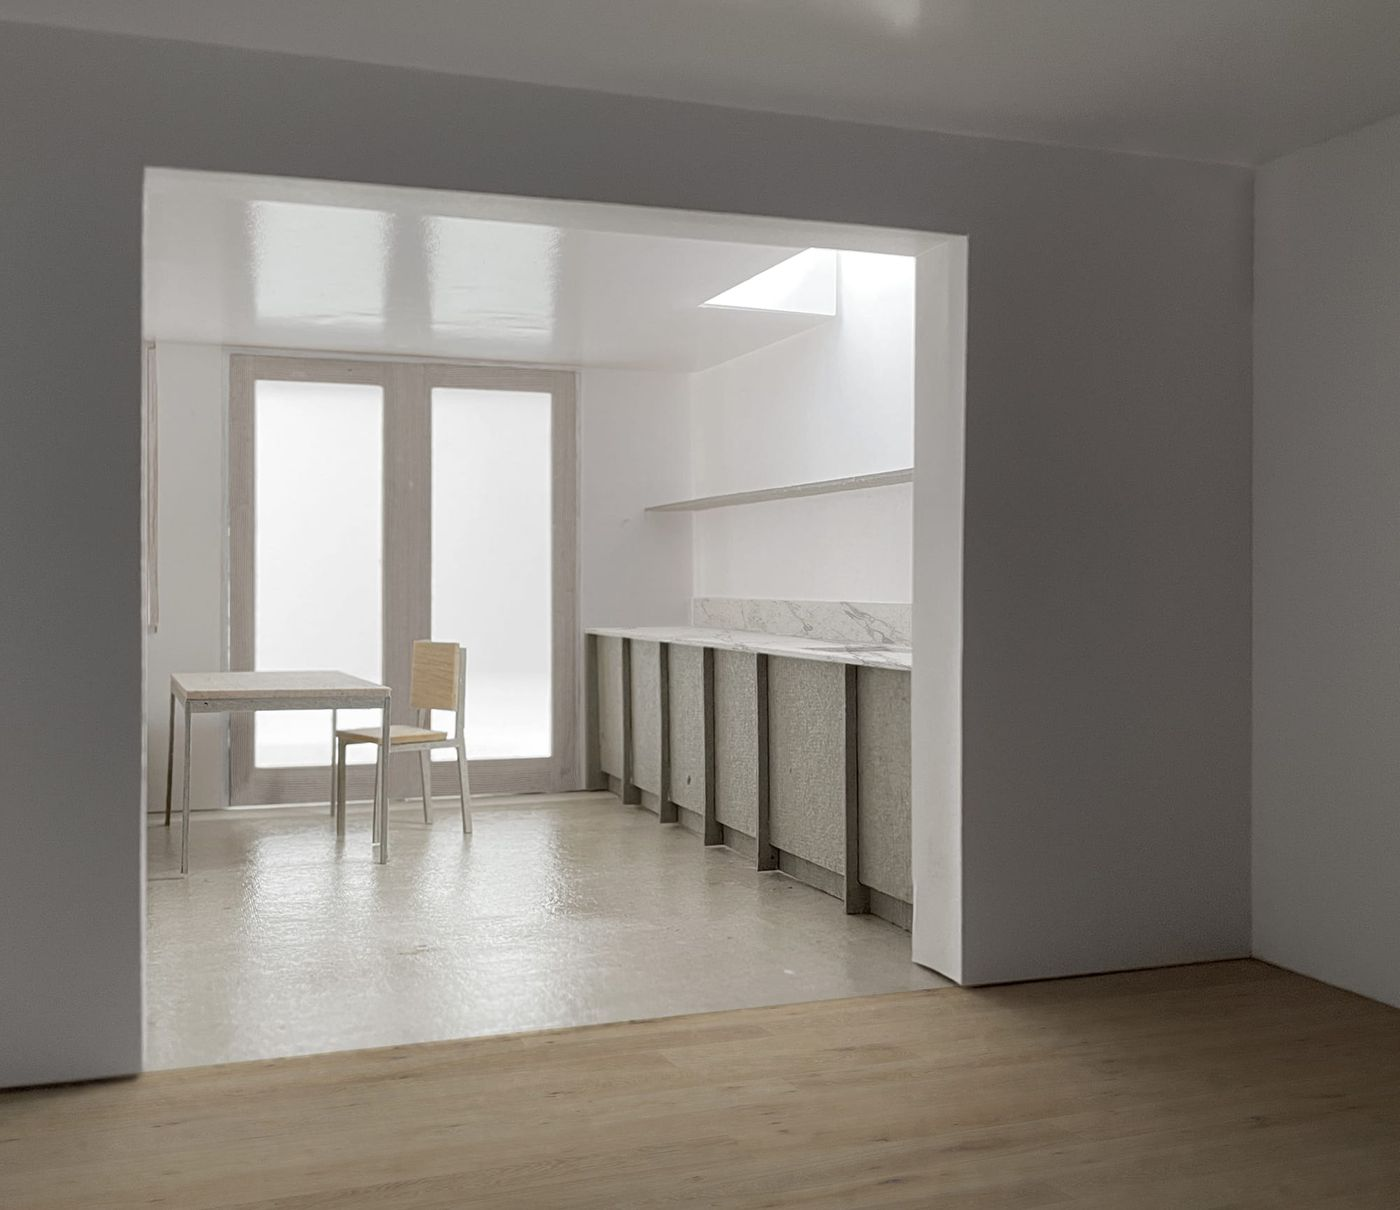 Interior view of the proposed kitchen and dining extension for From Works' rear extension proposal in South London.